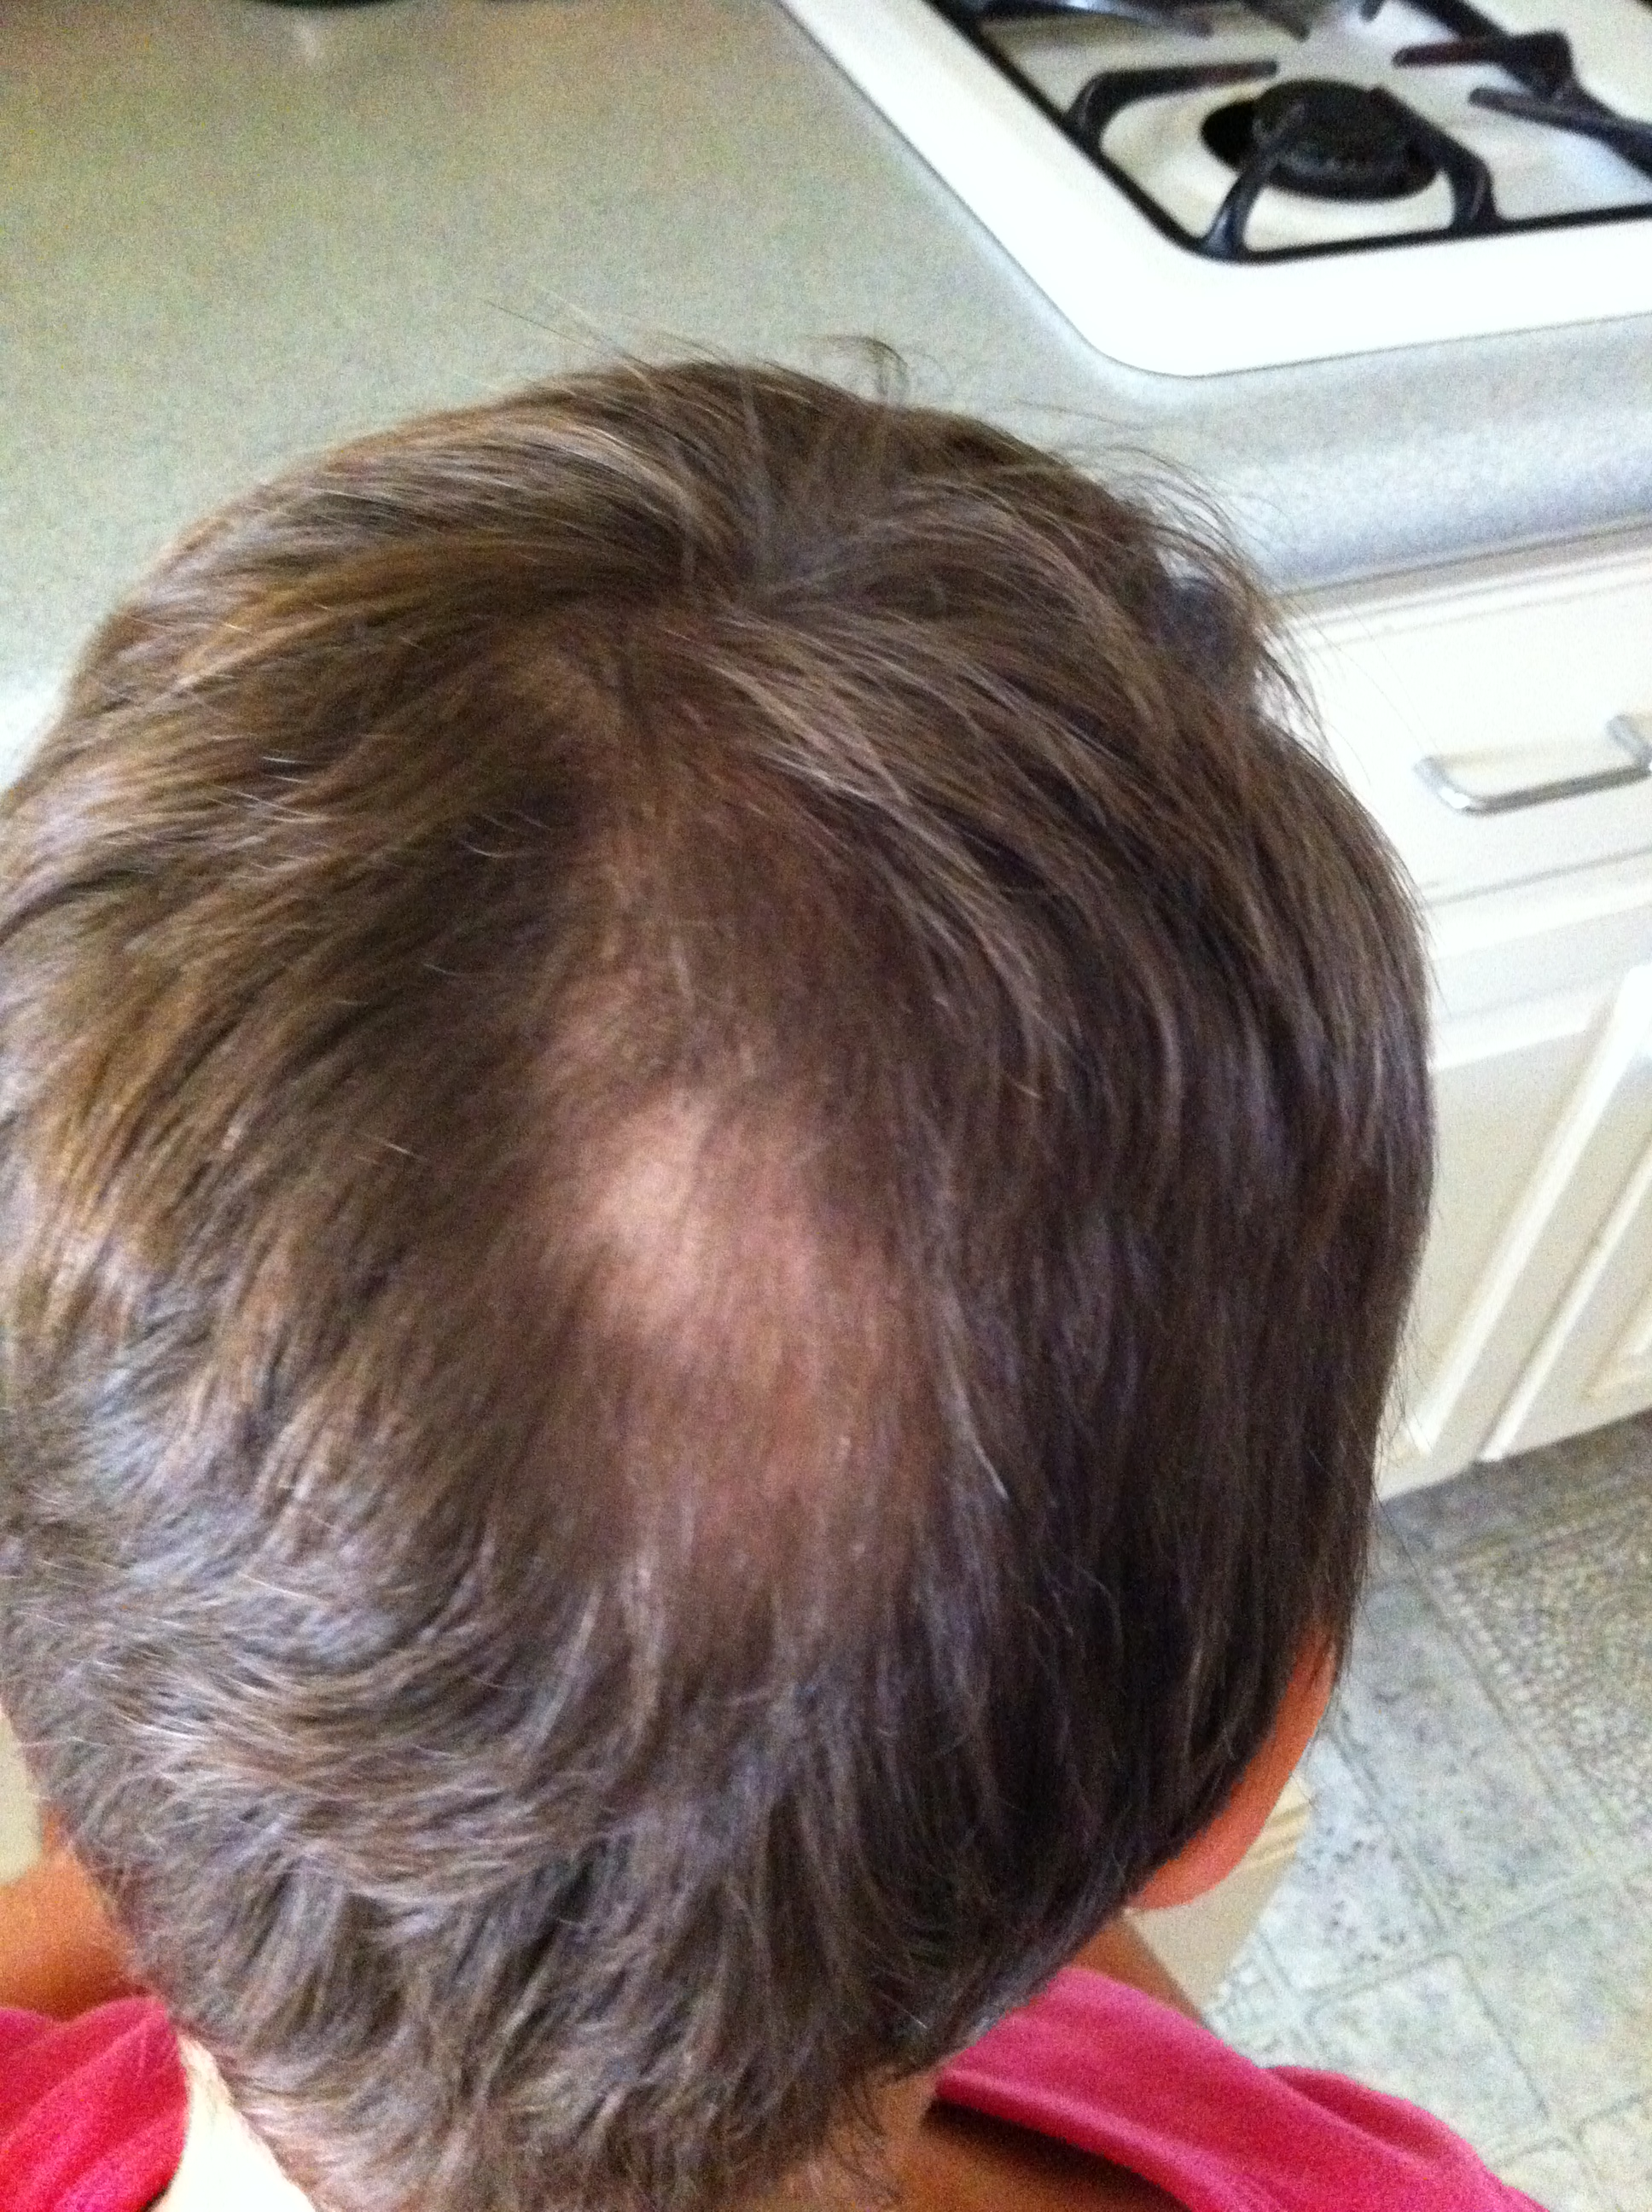 Cowlick vs bald spot  Forum By and for Hair Loss Patients